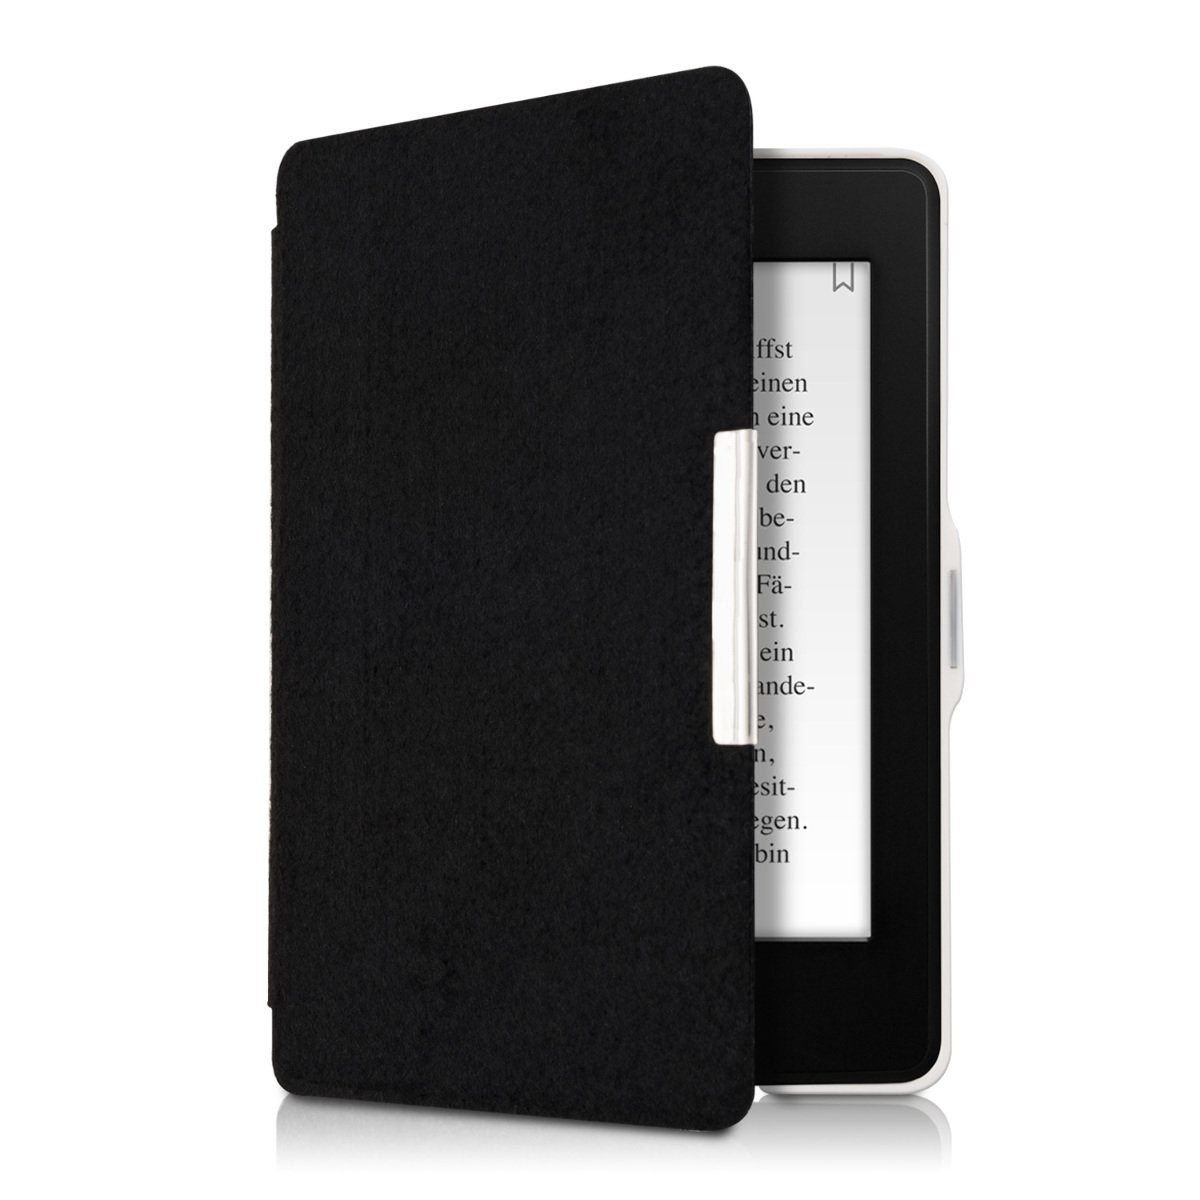 kwmobile Case for Amazon Kindle Paperwhite - Book Style Felt Fabric Protective e-Reader Cover Folio Case - black